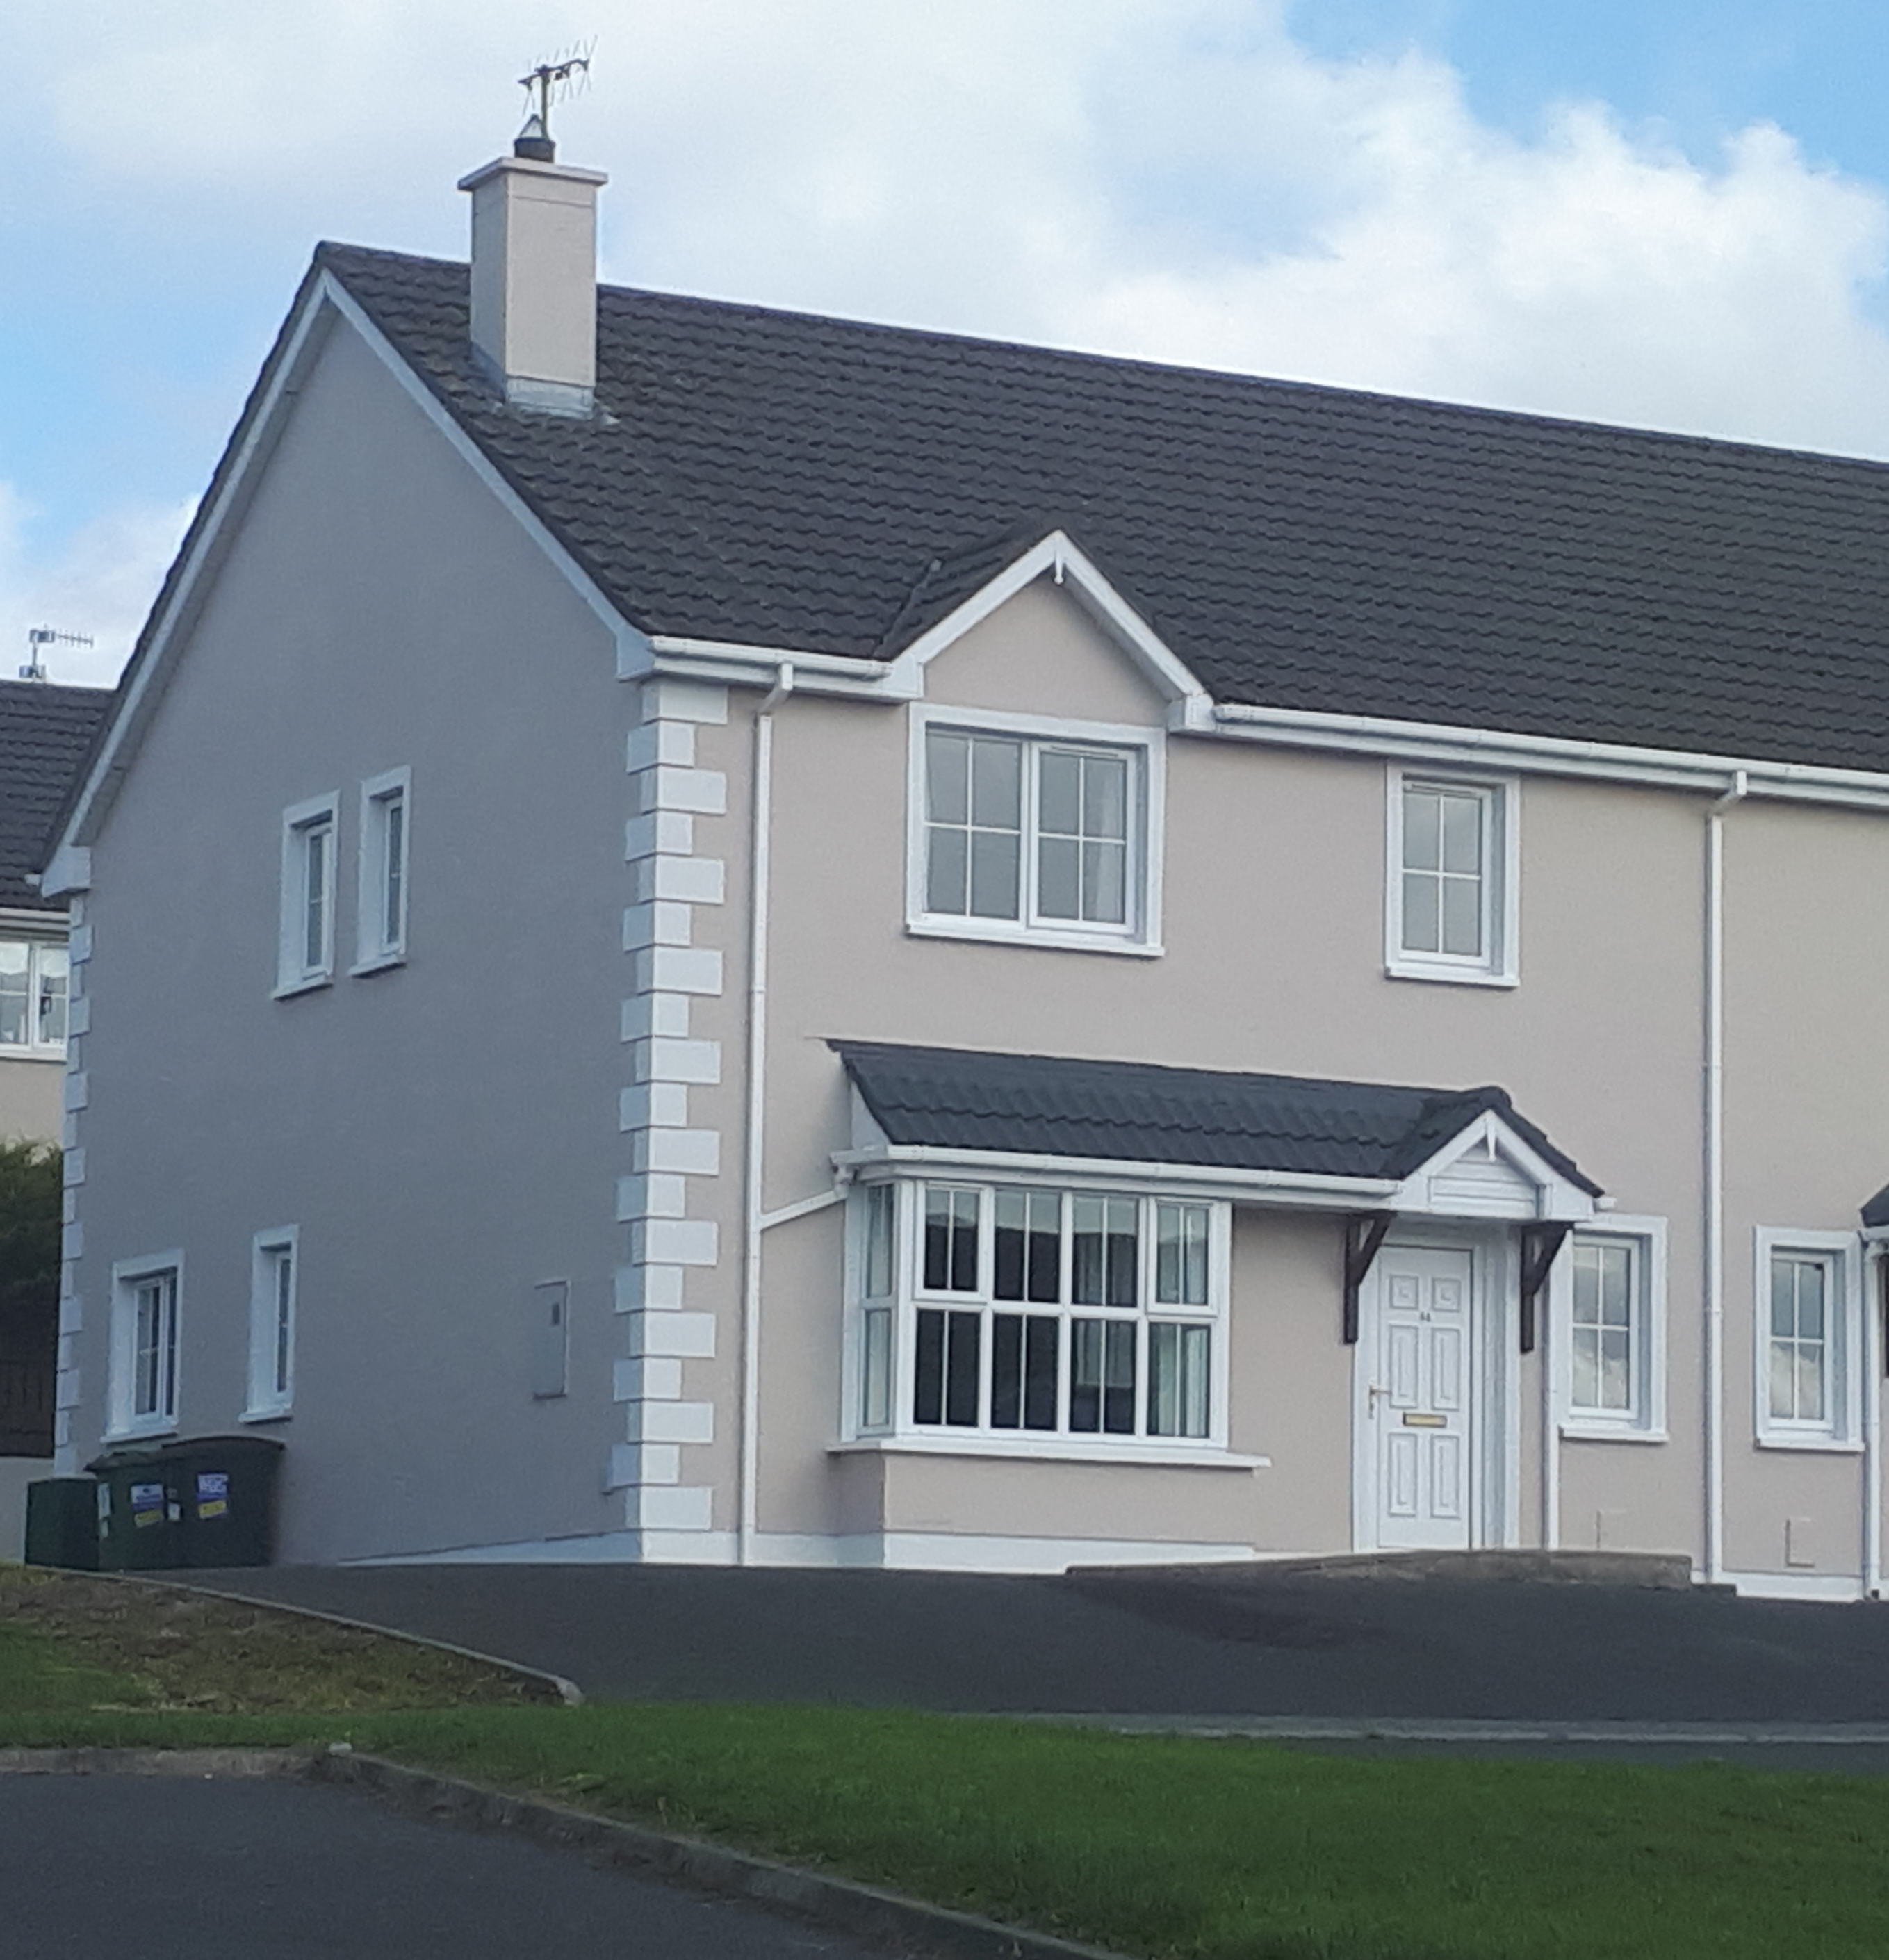 44 Glendale Manor, Letterkenny, Co. Donegal F92 V97E